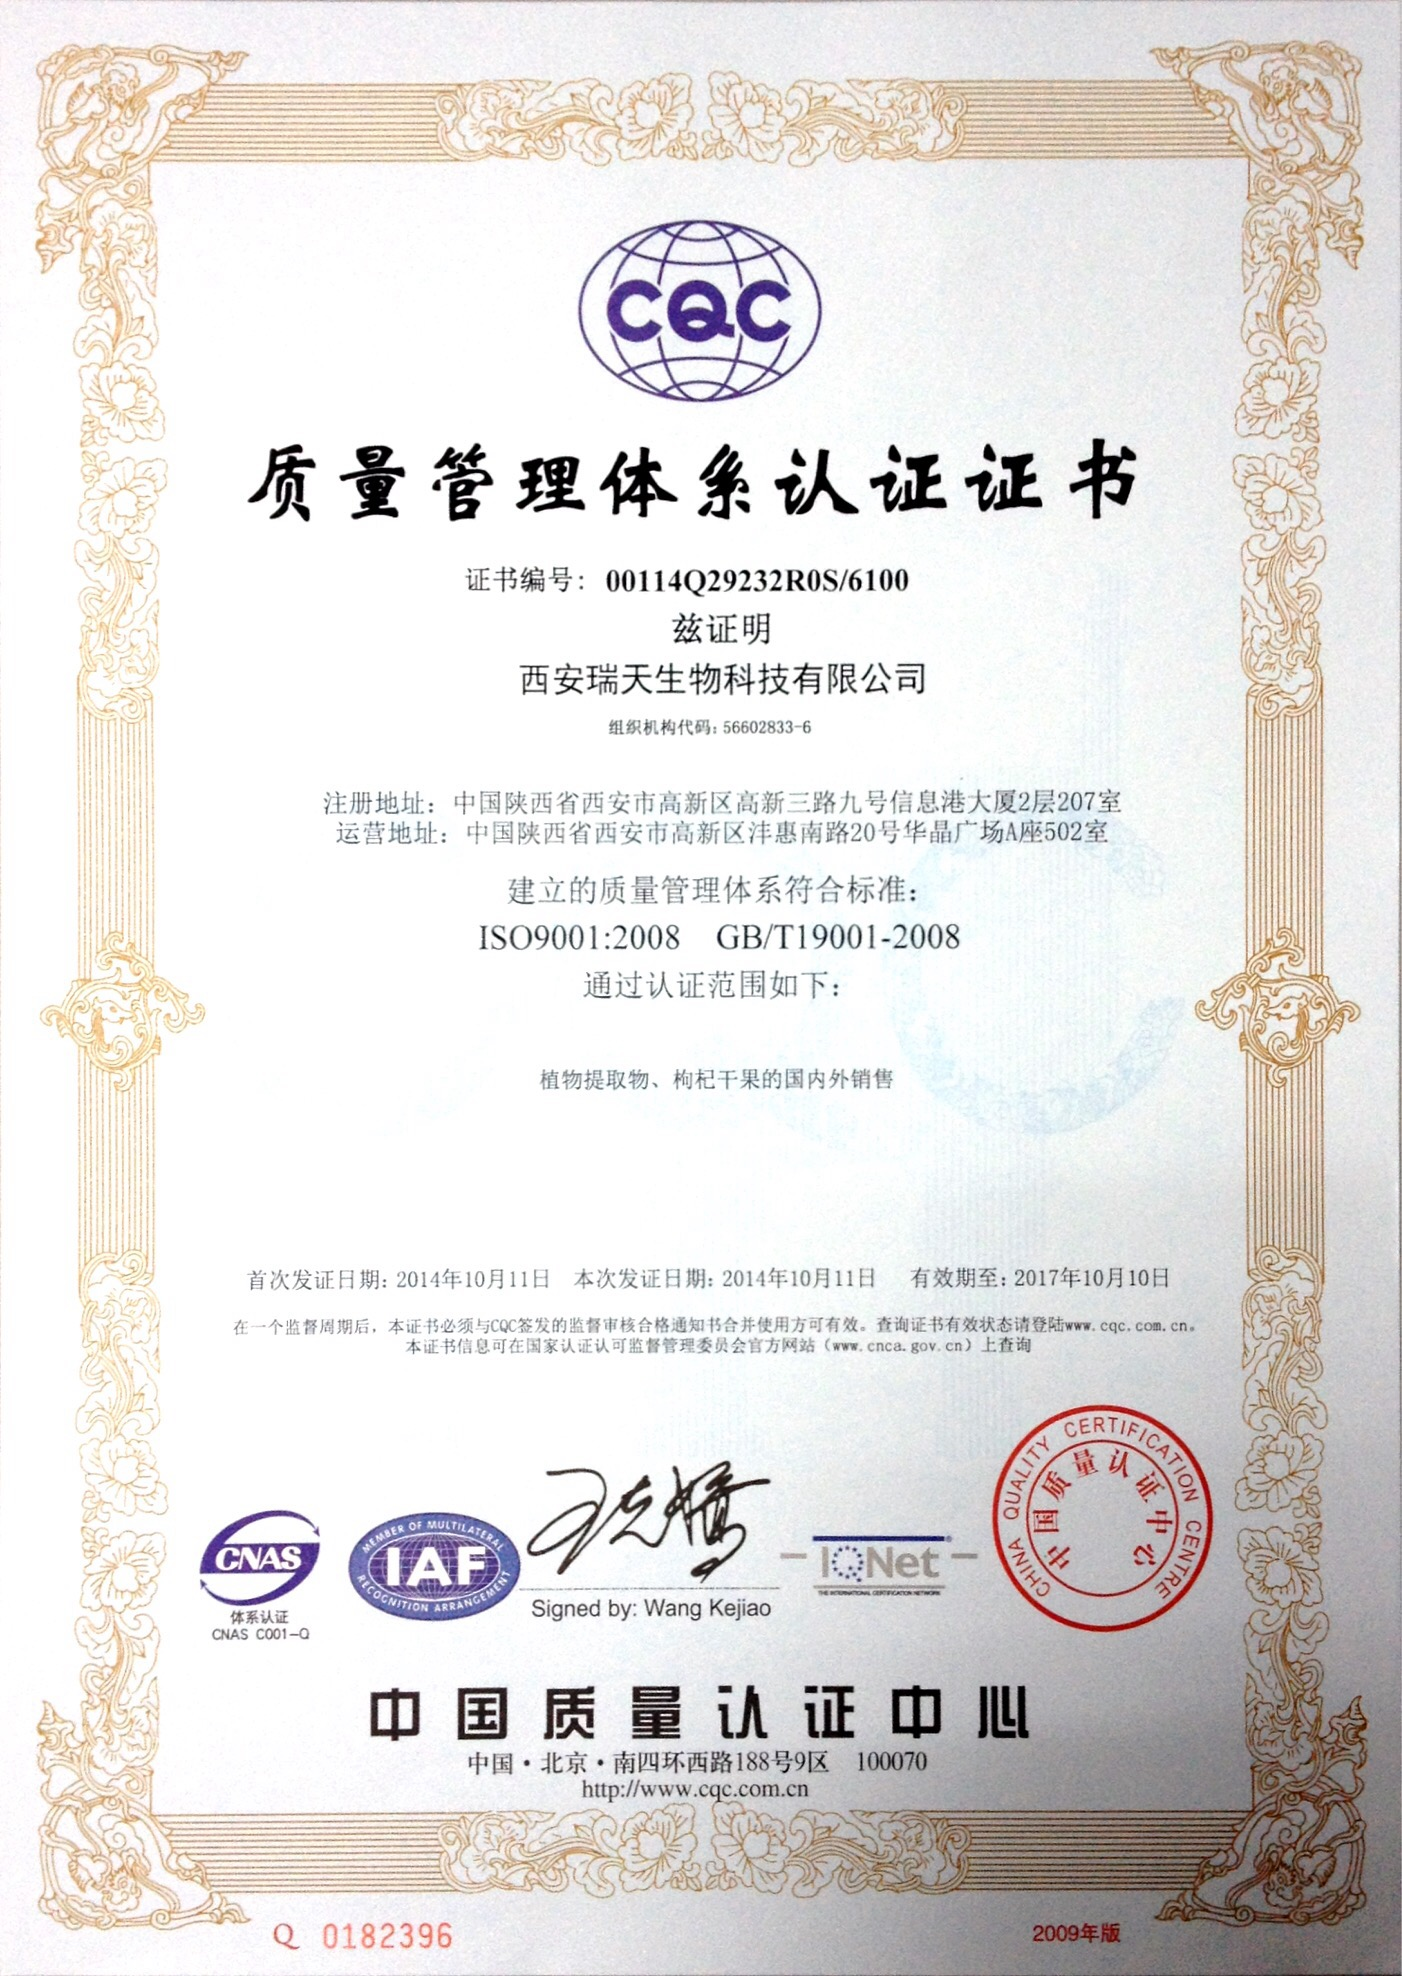 Finesky get the ISO-9000 certificate